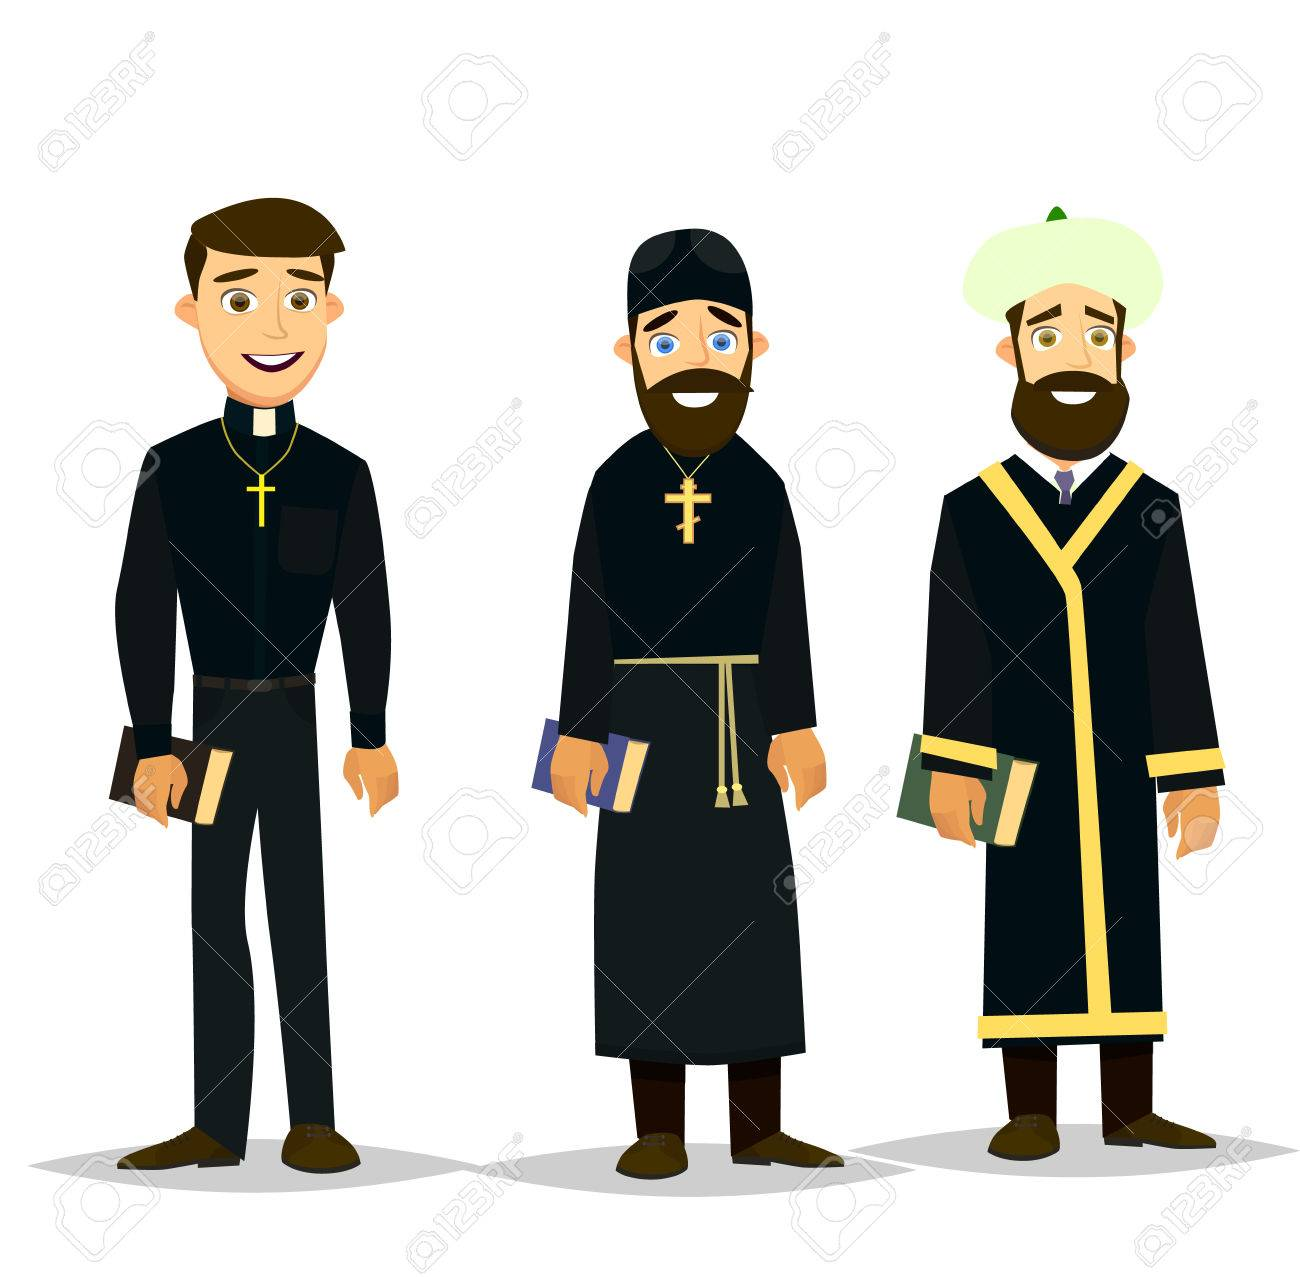 hight resolution of a catholic priest orthodox priest and a muslim imam vector illustration in a flat